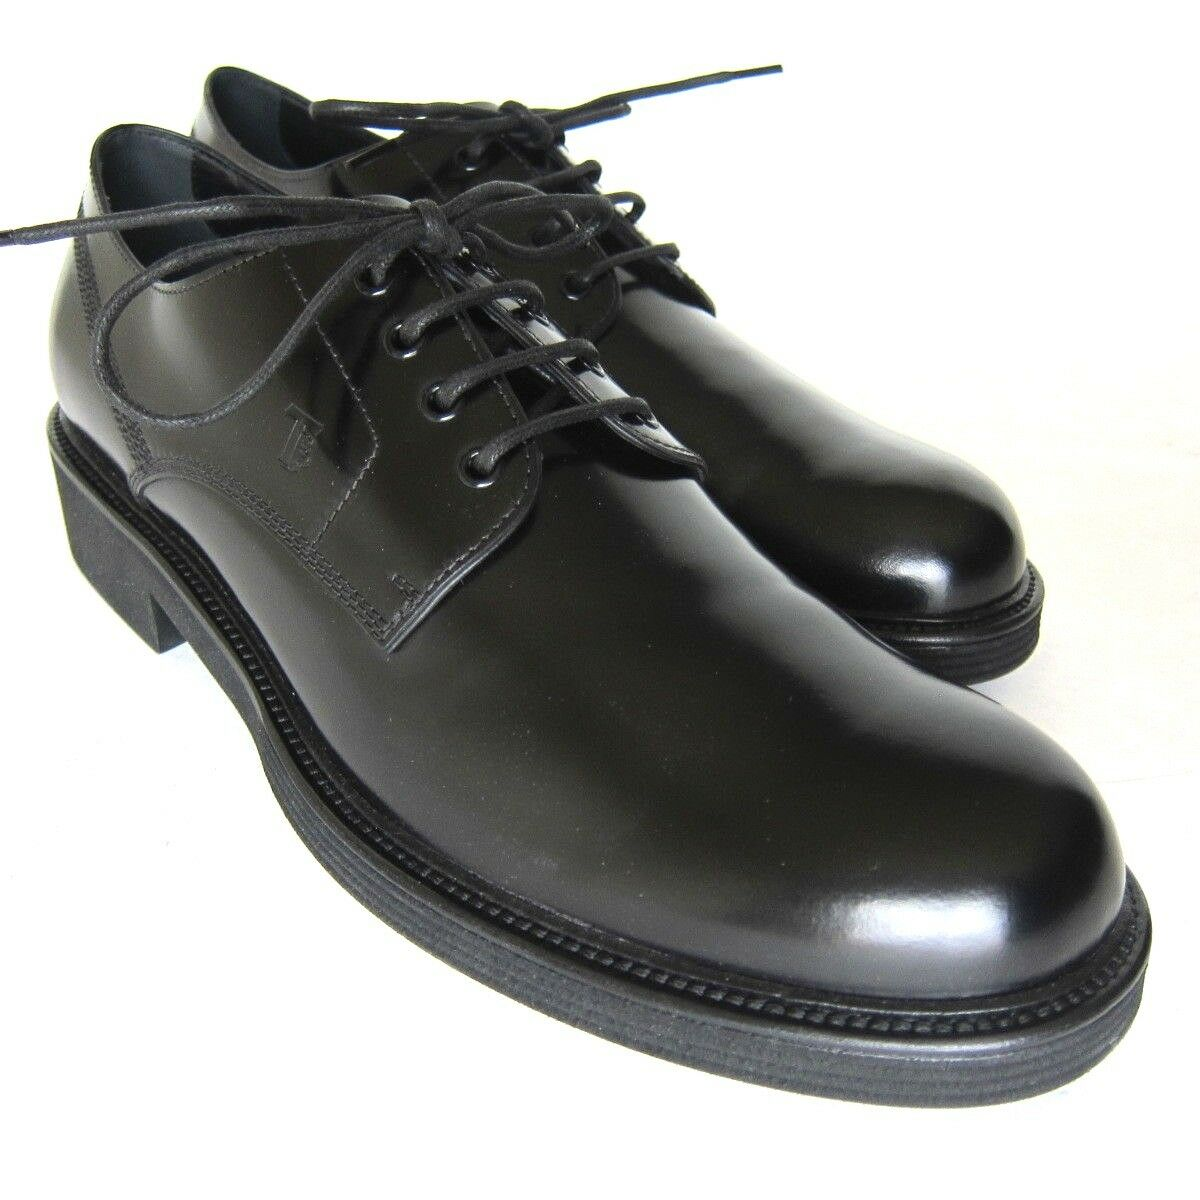 S-2190119 New Tods Derby Black Patent LaceUp shoes Size US 11.5 marked 10.5